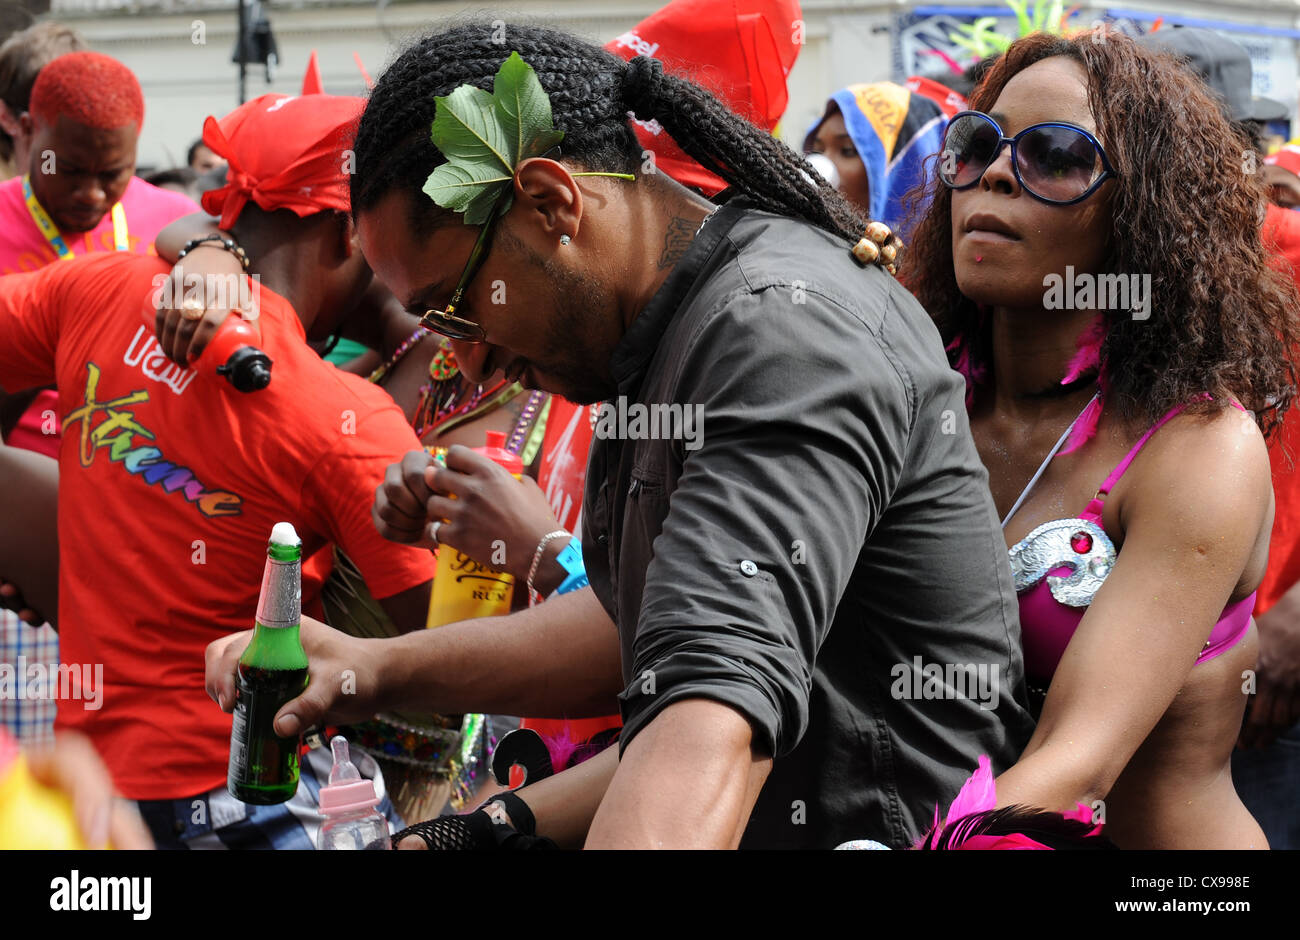 People at Notting Hill Carnival on Monday 27th August 2012 - Stock Image